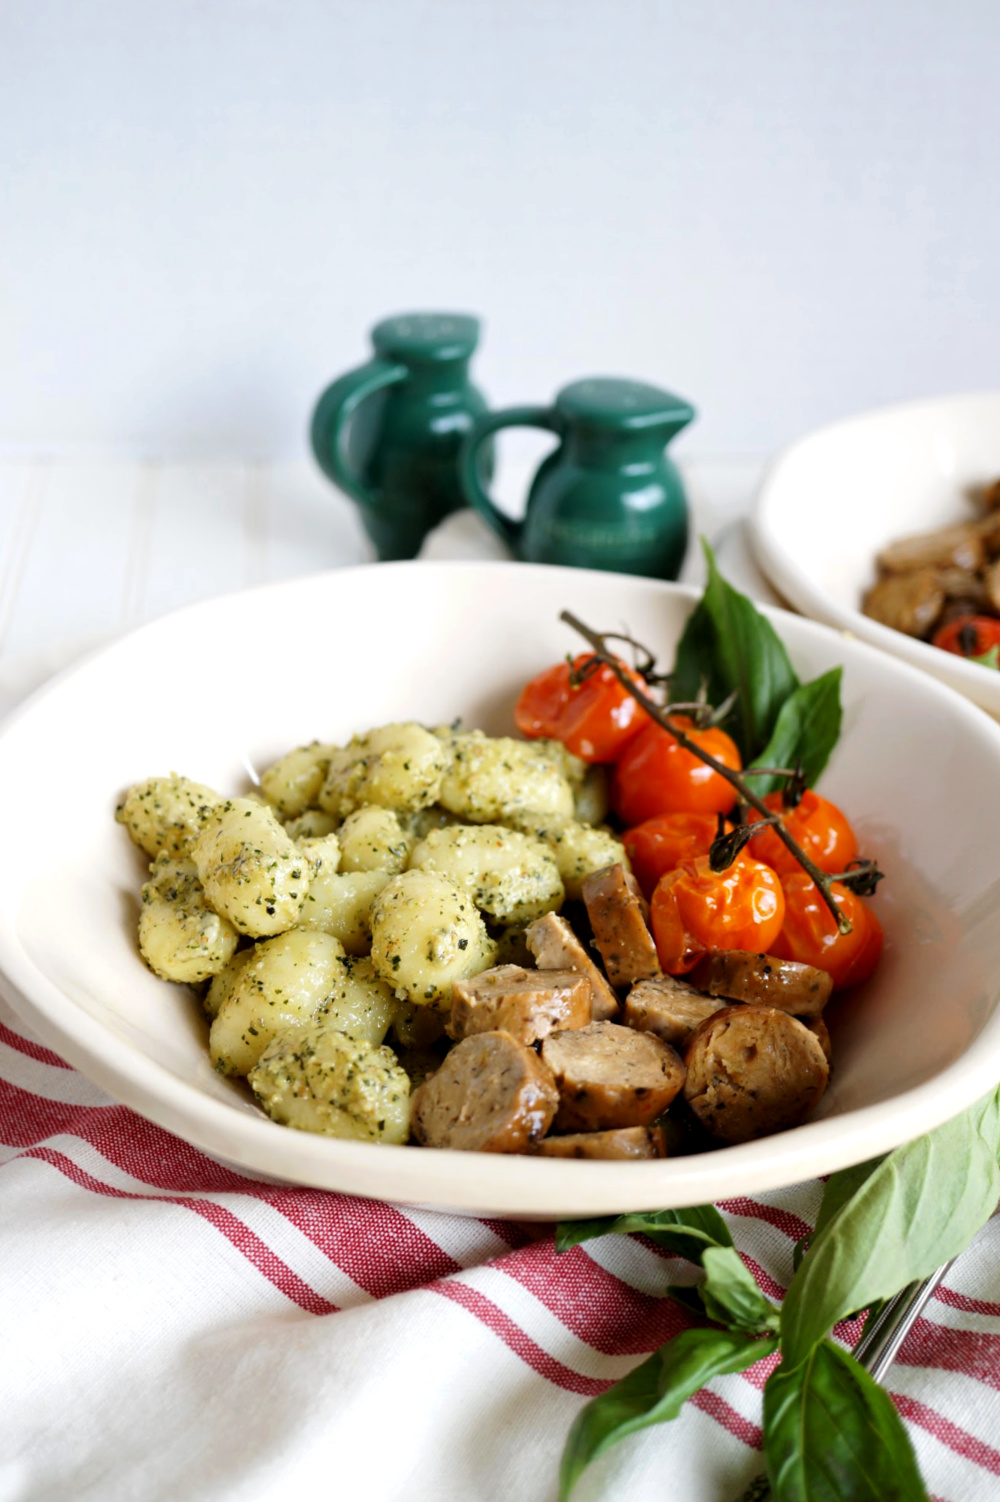 plate of gnocchi with sausage and tomatoes